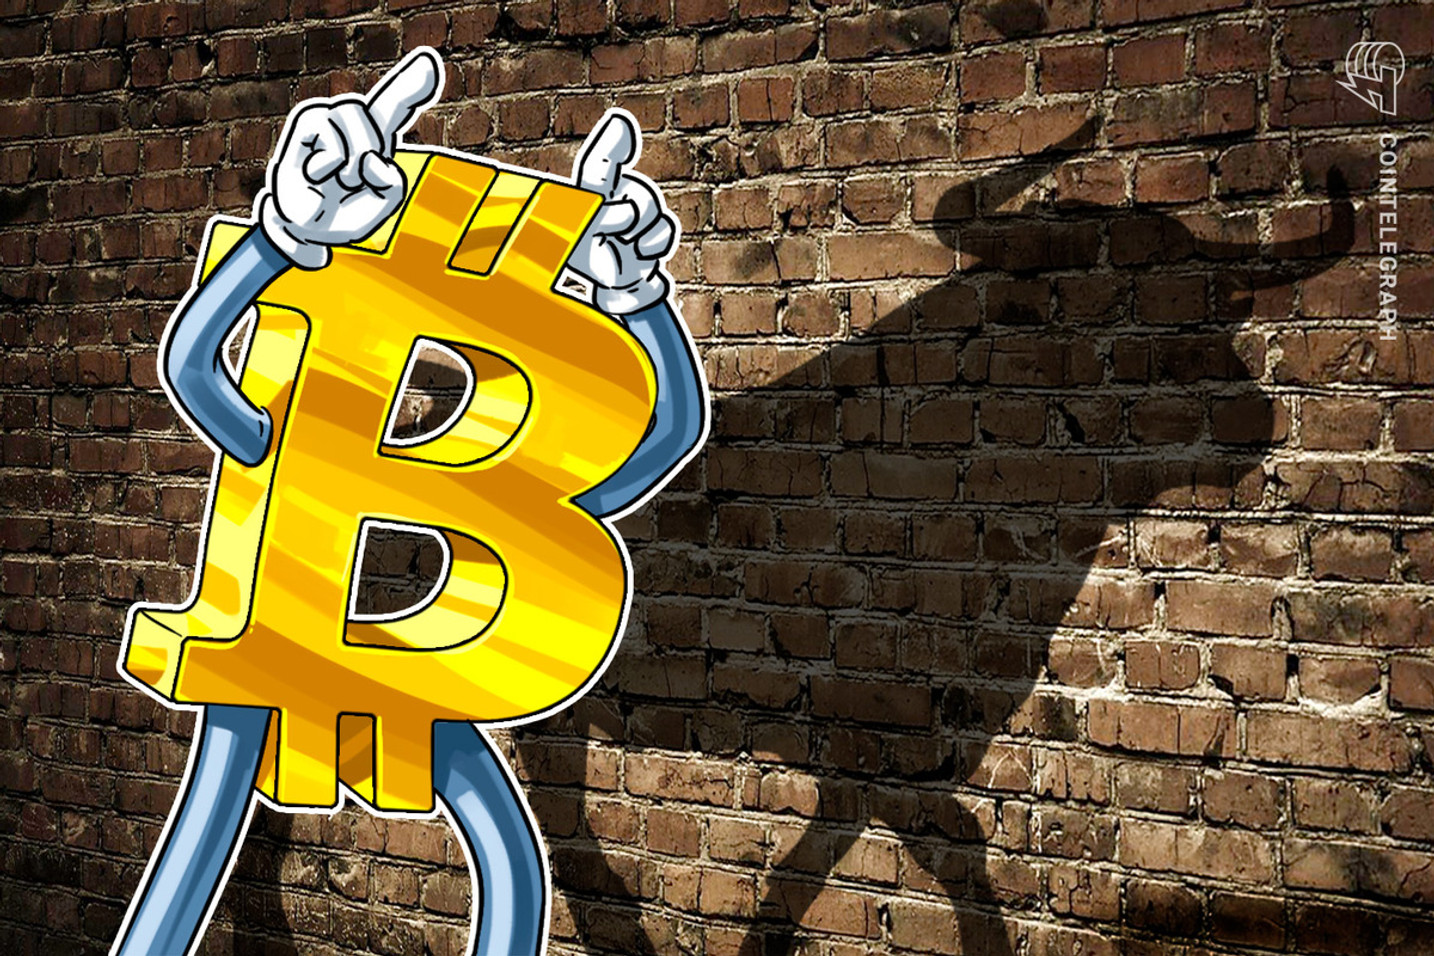 Bitcoin trader shares 7 reasons to be bullish on BTC beyond $12K